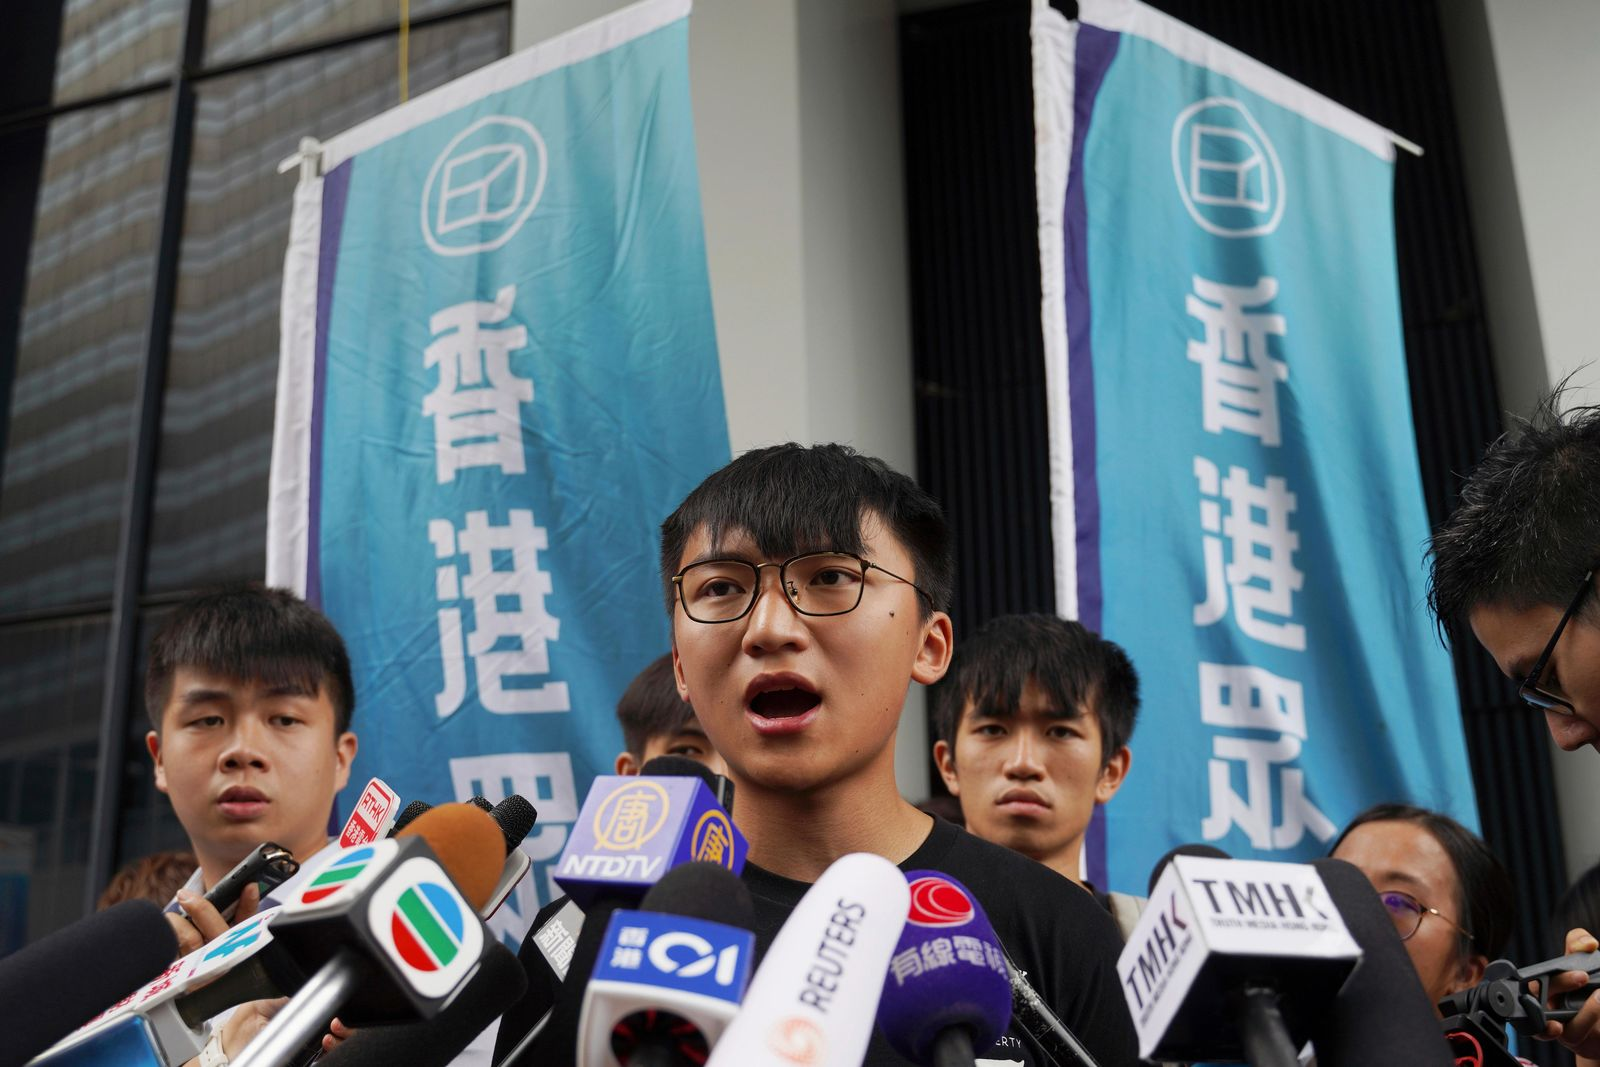 Issac Cheng, vice-chairperson of Demosisto, speaks to reporters in Hong Kong Friday, Aug. 30, 2019.{ } (AP Photo/Vincent Yu)